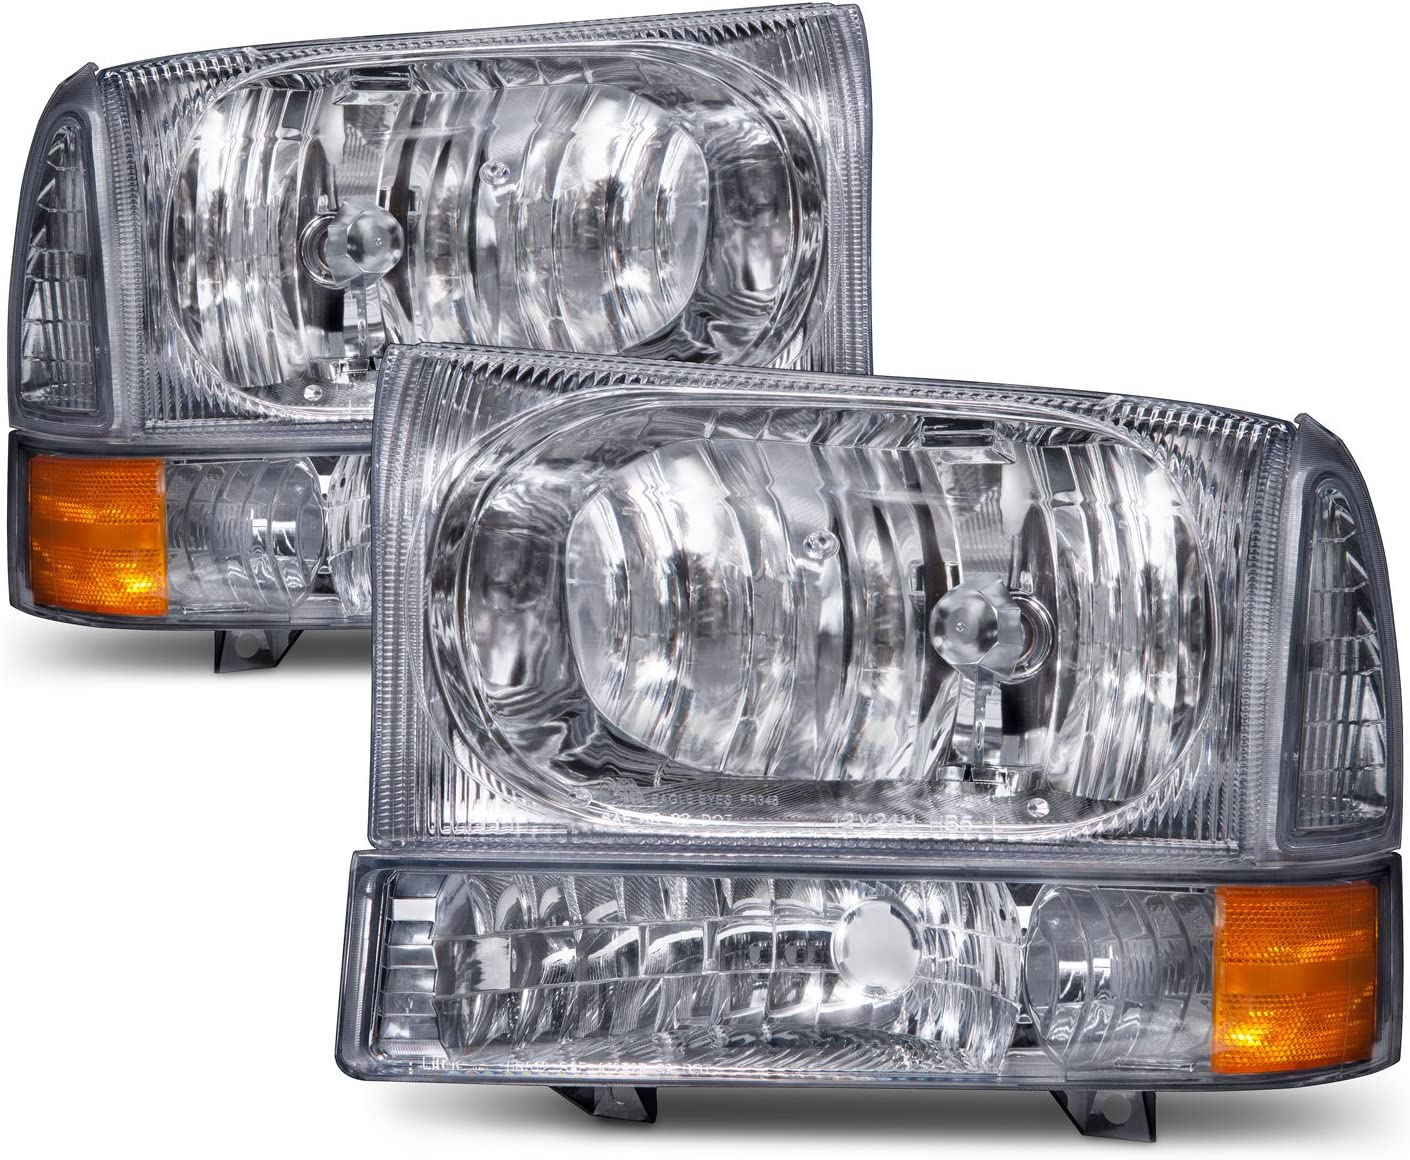 Fleetwood Discovery 2007-2013 RV Motorhome Pair Chrome Front Lamps Headlights with Bulbs Left /& Right